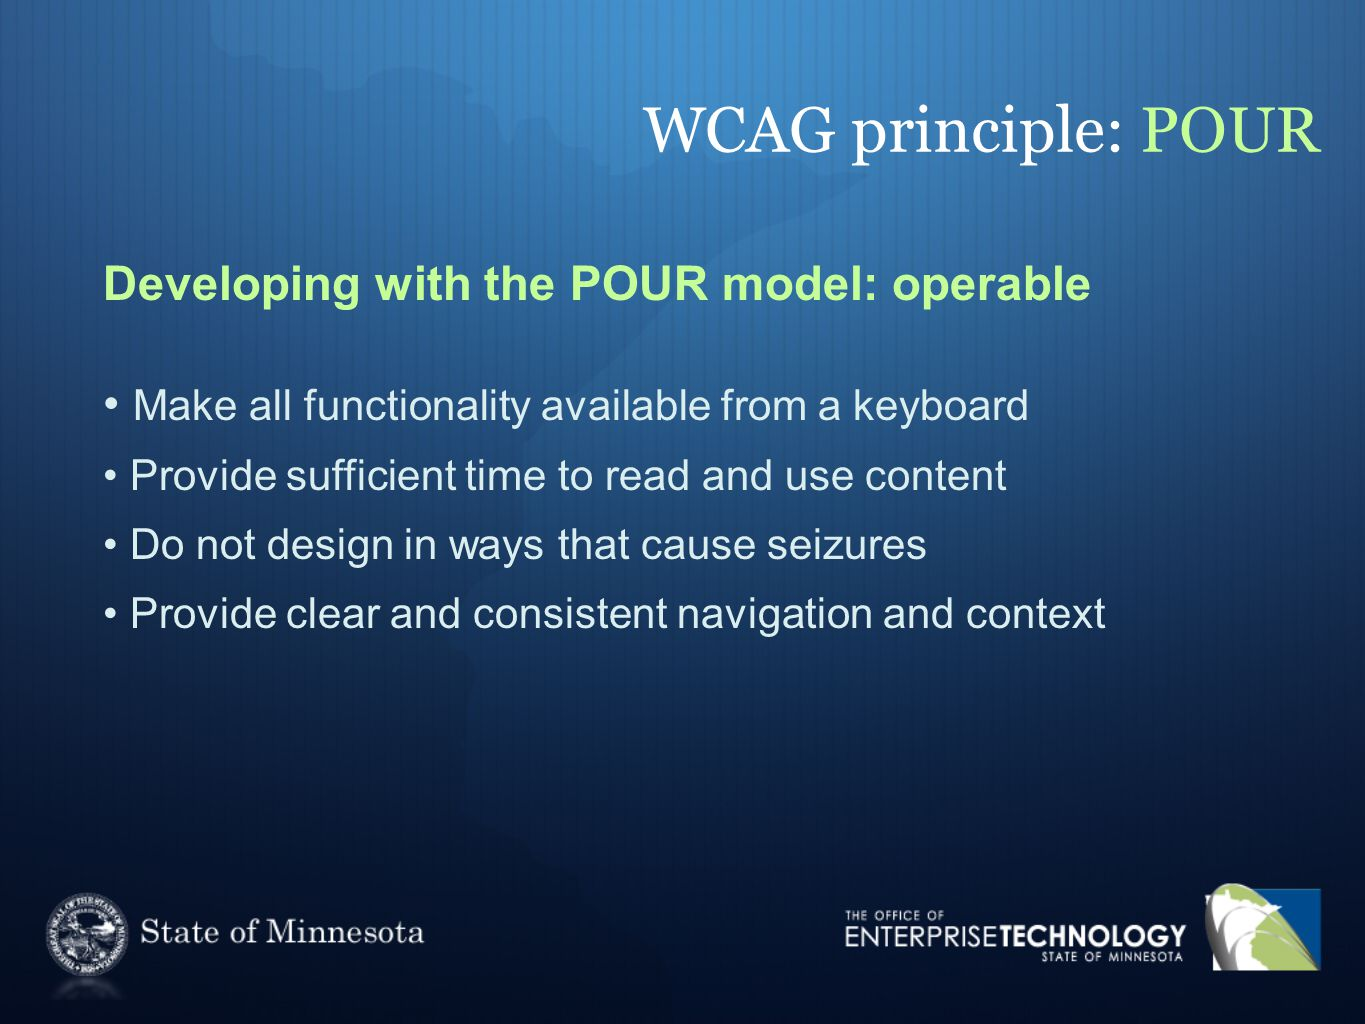 WCAG principle: POUR Developing with the POUR model: operable Make all functionality available from a keyboard Provide sufficient time to read and use content Do not design in ways that cause seizures Provide clear and consistent navigation and context